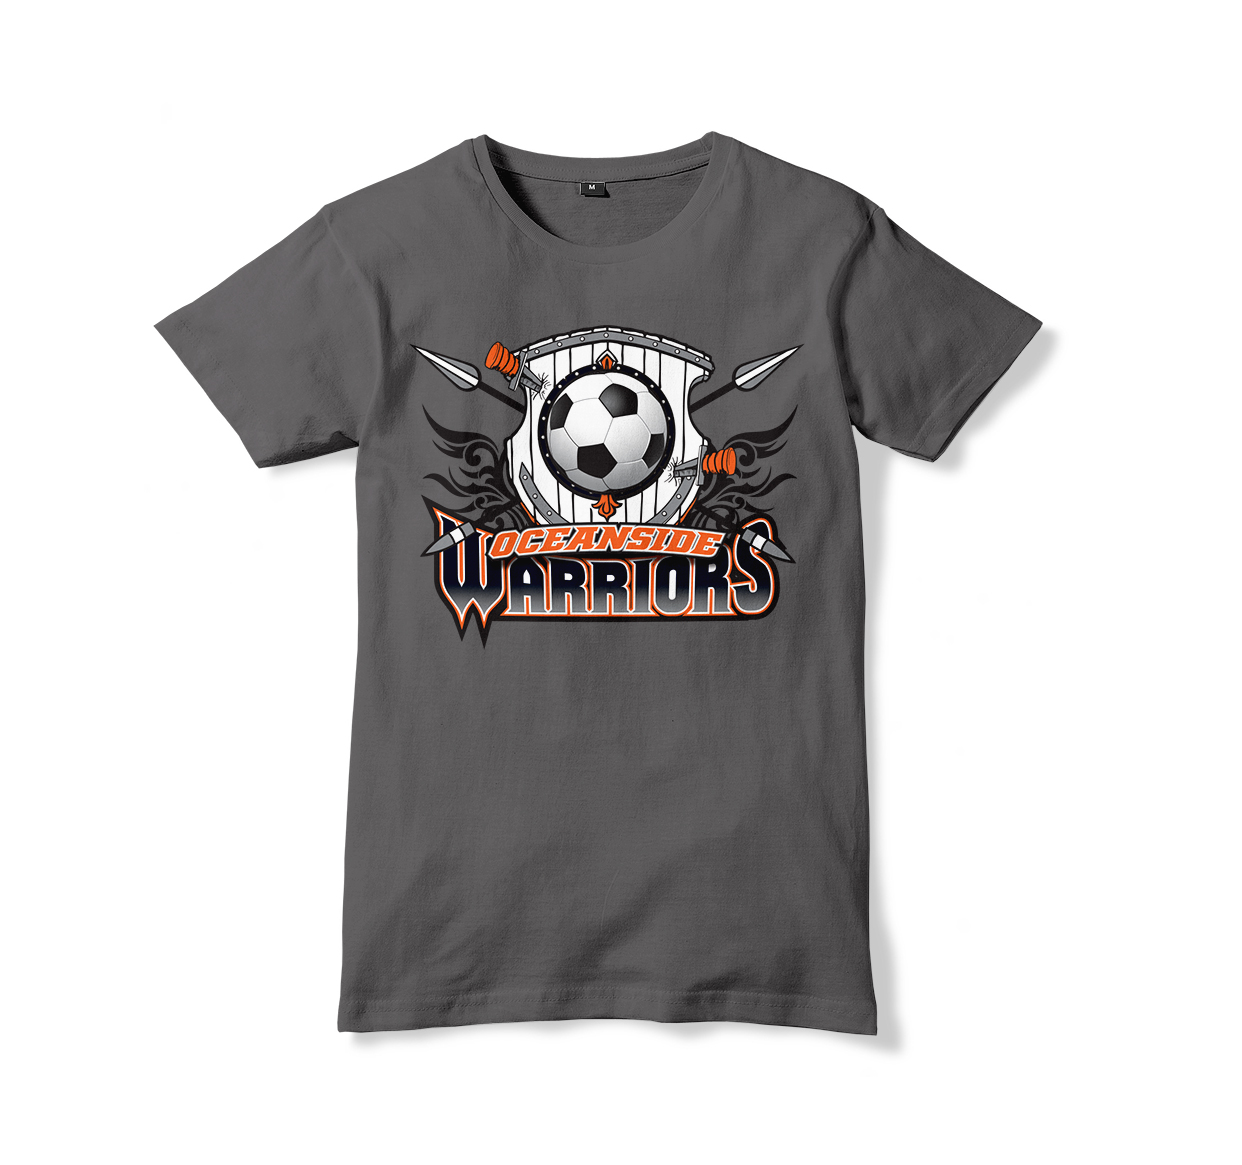 b793d26e1 Soccer Team Shirt - Accounting Plus of Wayne, Nebraska - Bookkeeping ...